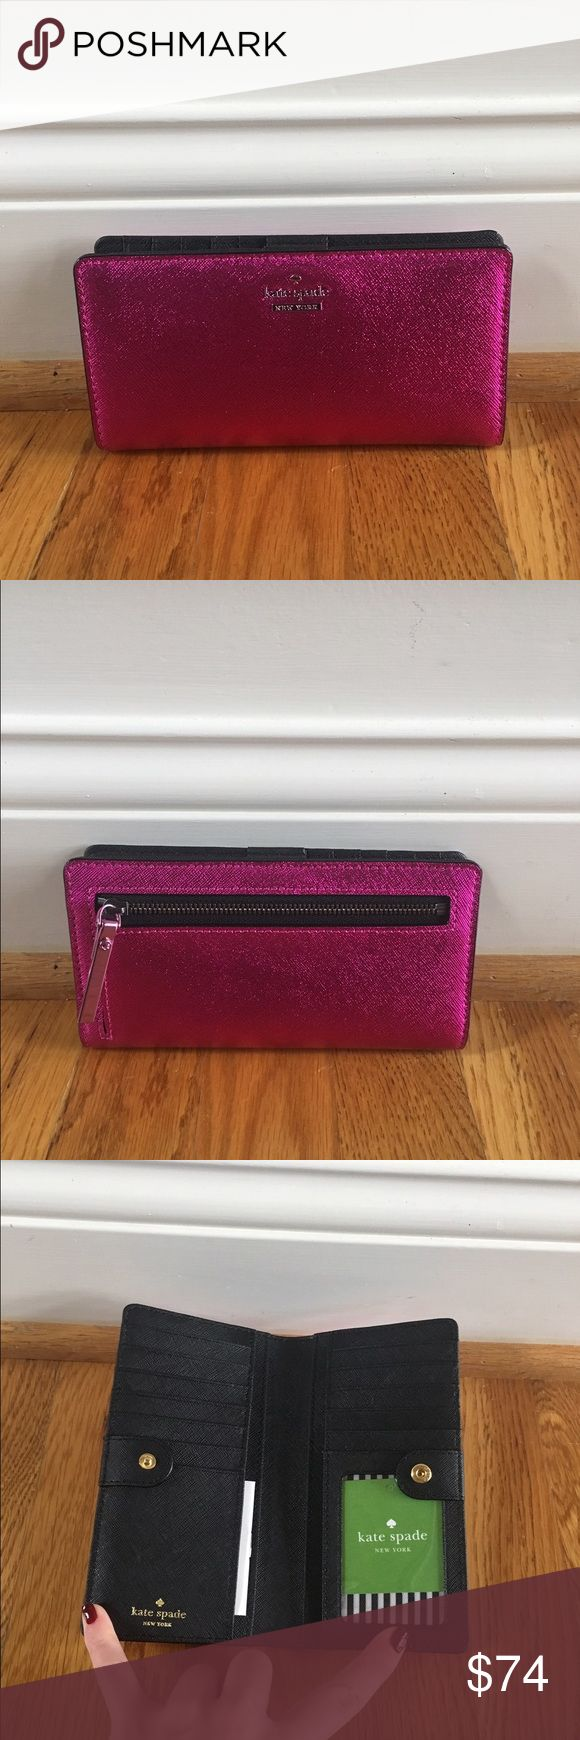 ❗️SALE❗️$100 Kate Spade wallet New with tags $100 Kate Spade Stacy wallet in Cameron street metallic bajsrose// brand new, perfect condition// never worn before kate spade Bags Wallets